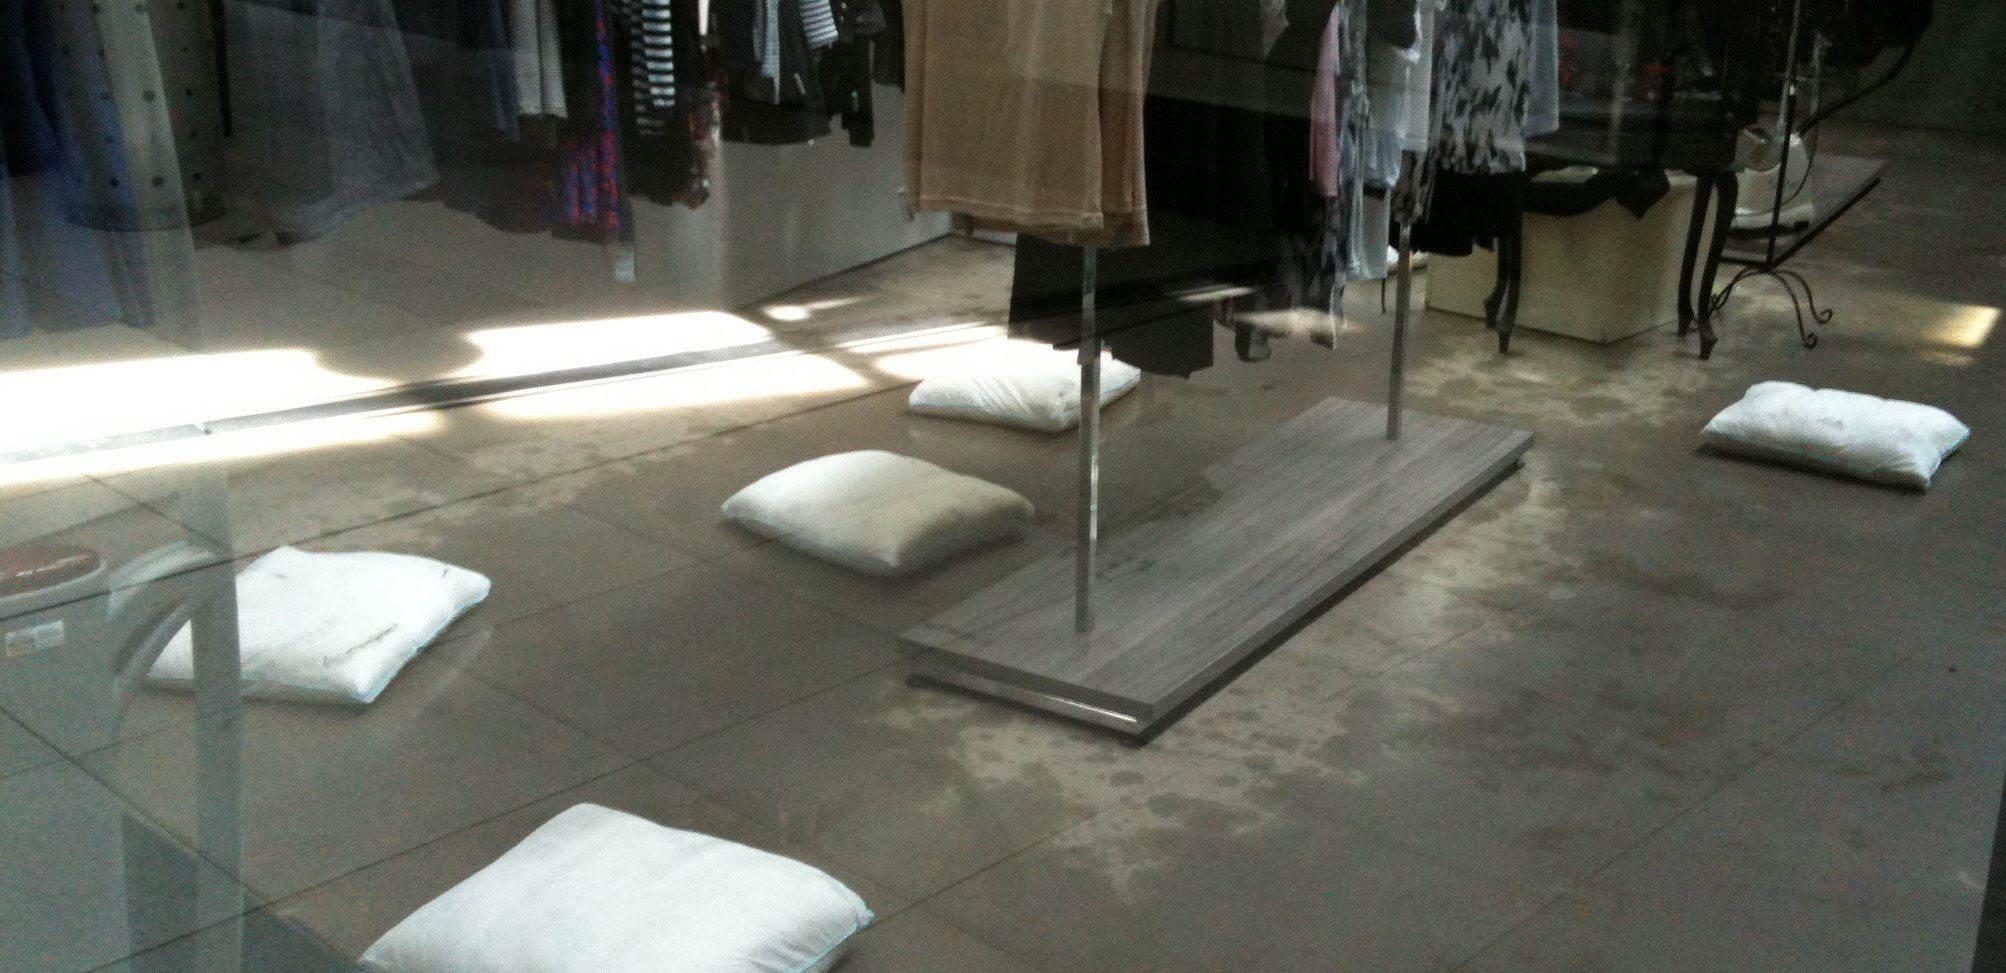 IMGFloodSax_soaking_up_water_in_a_retail_store